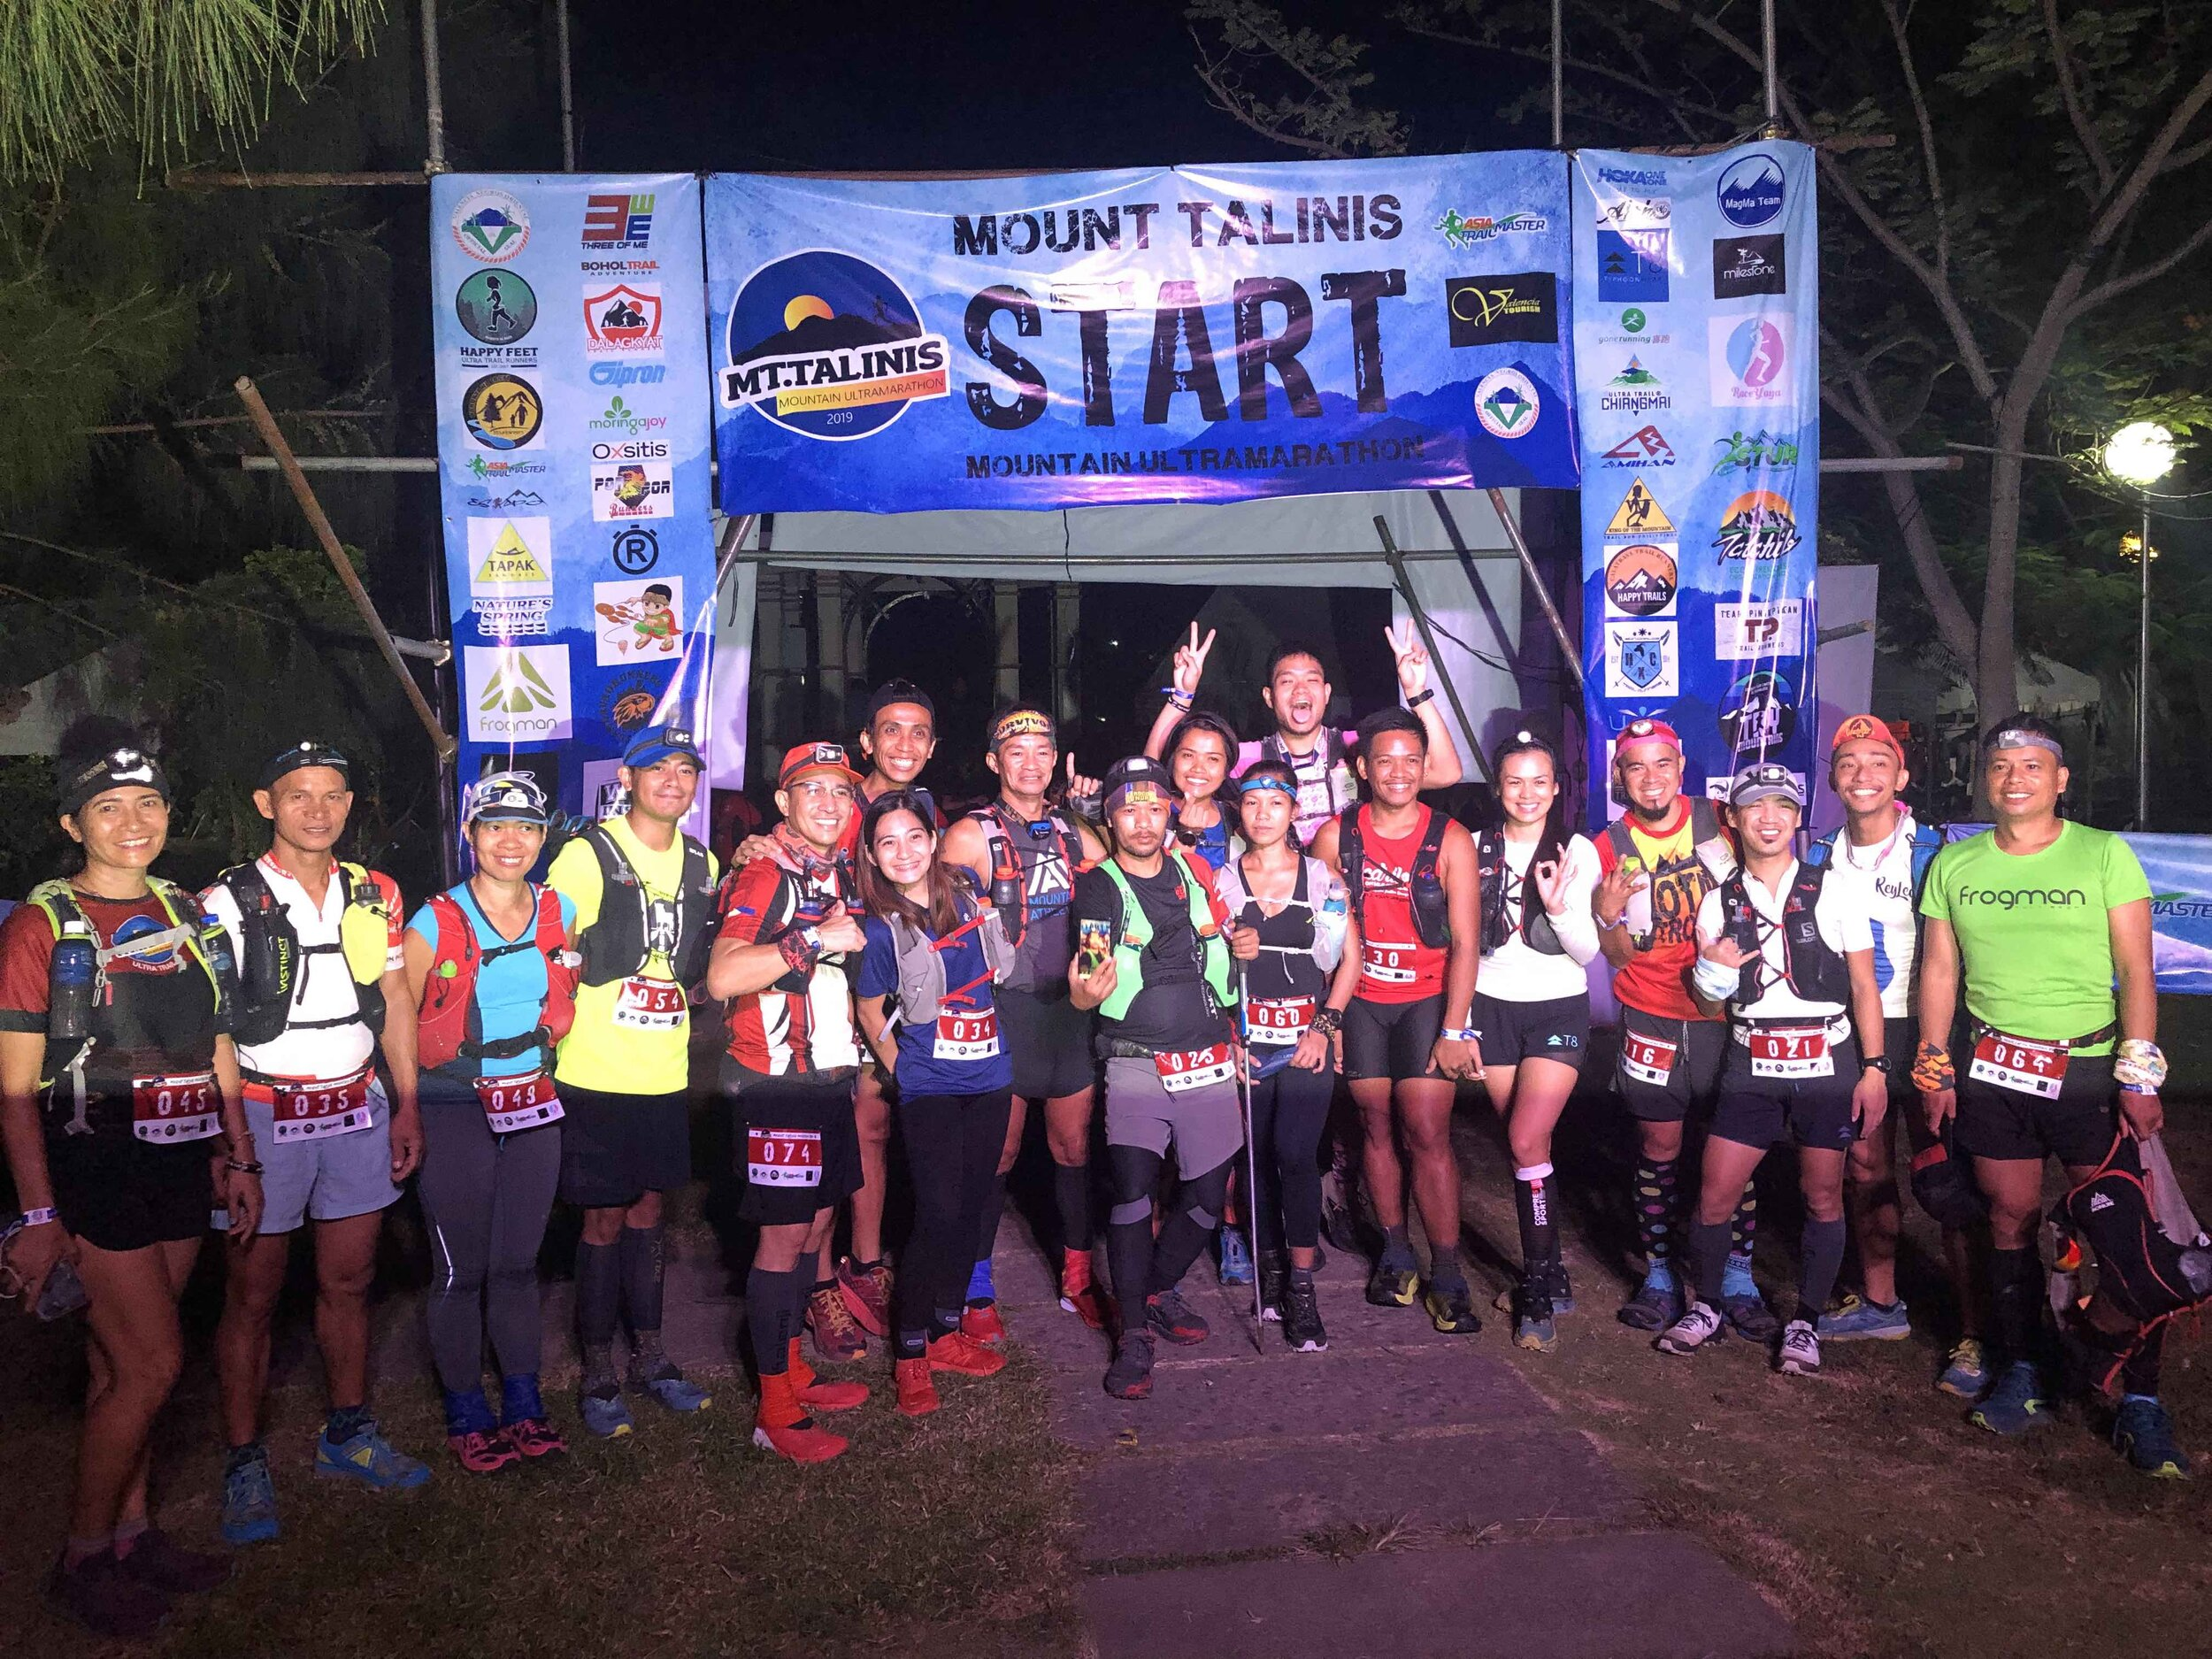 One group of the 333 runners who started the 70K and 50K race categories this weekend